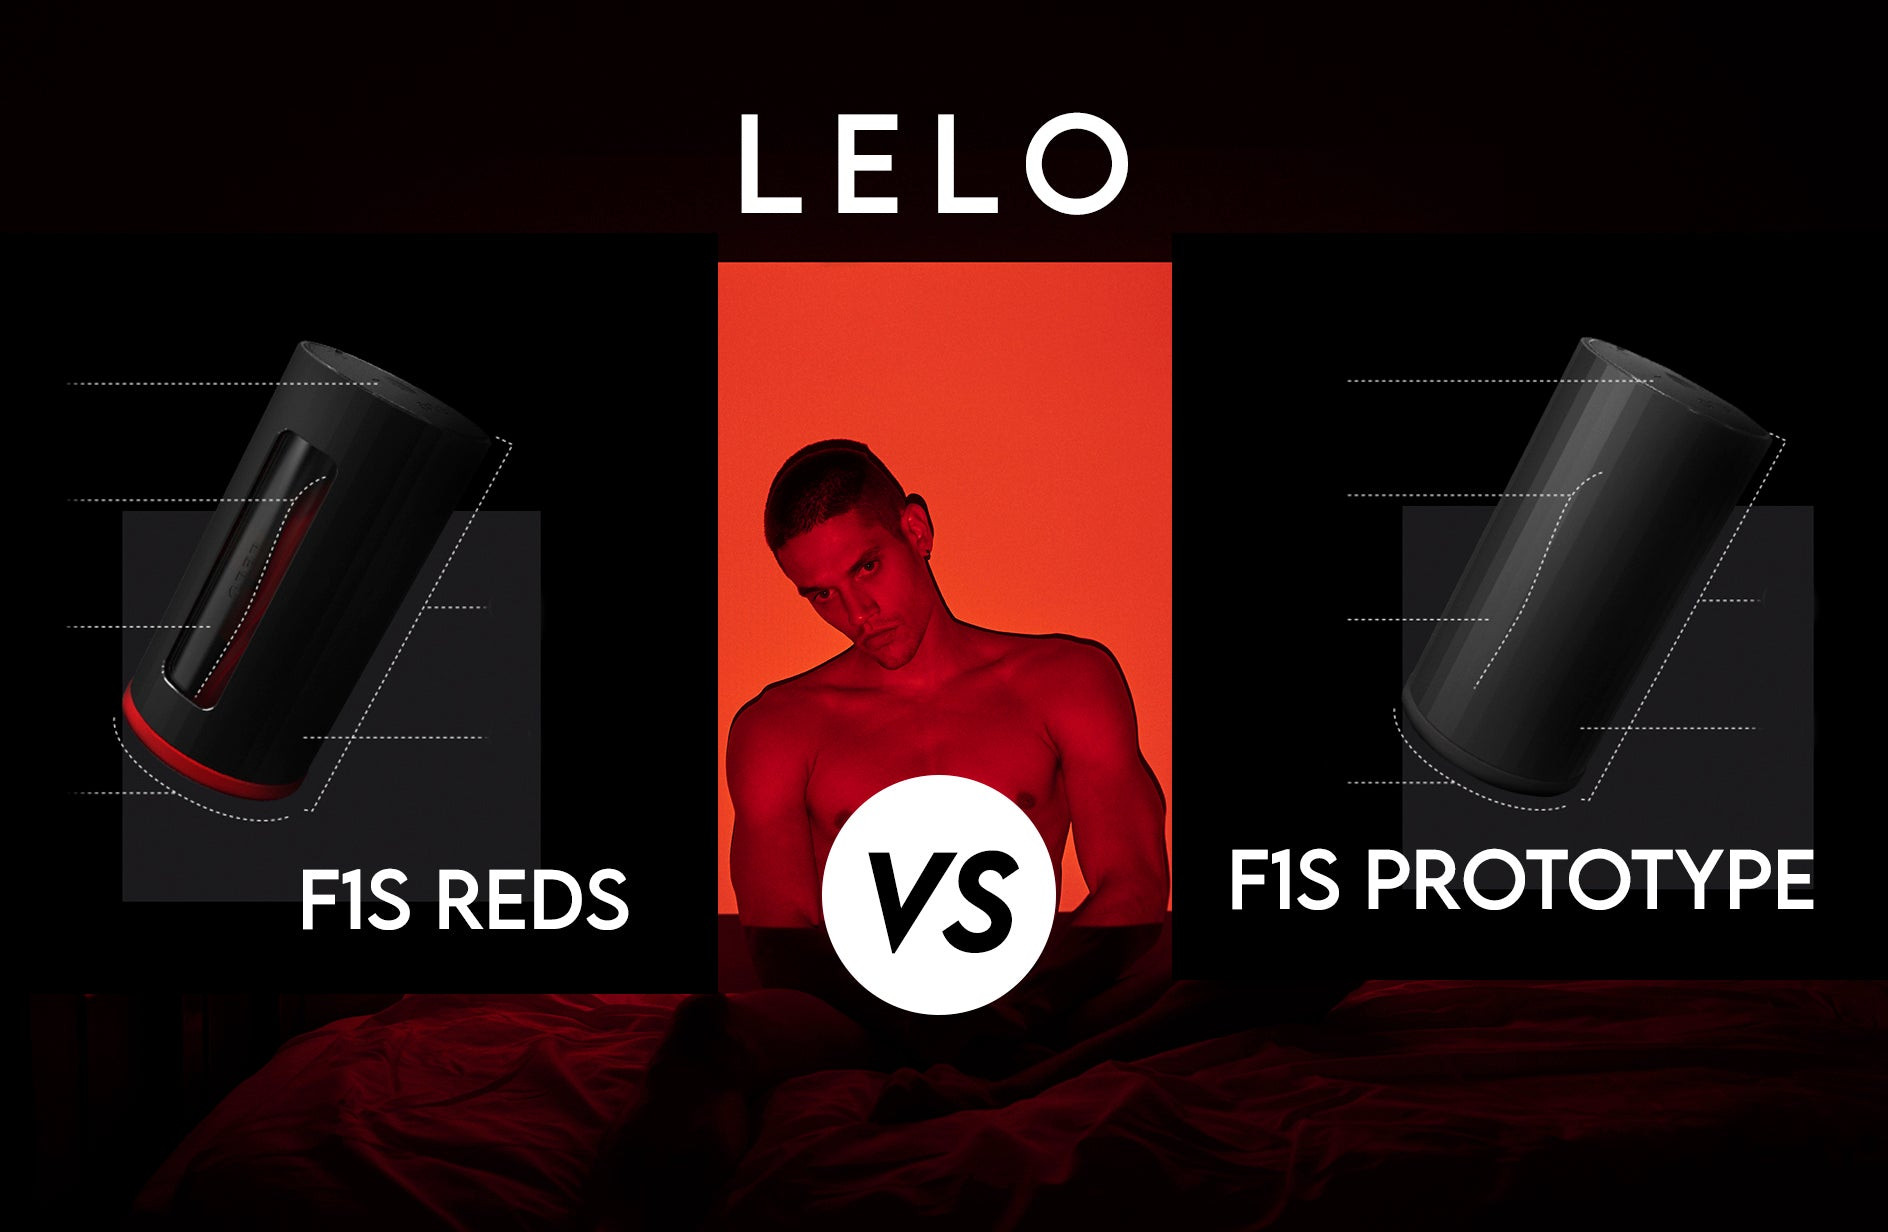 Difference Between LELO's F1s Reds & F1s Prototype